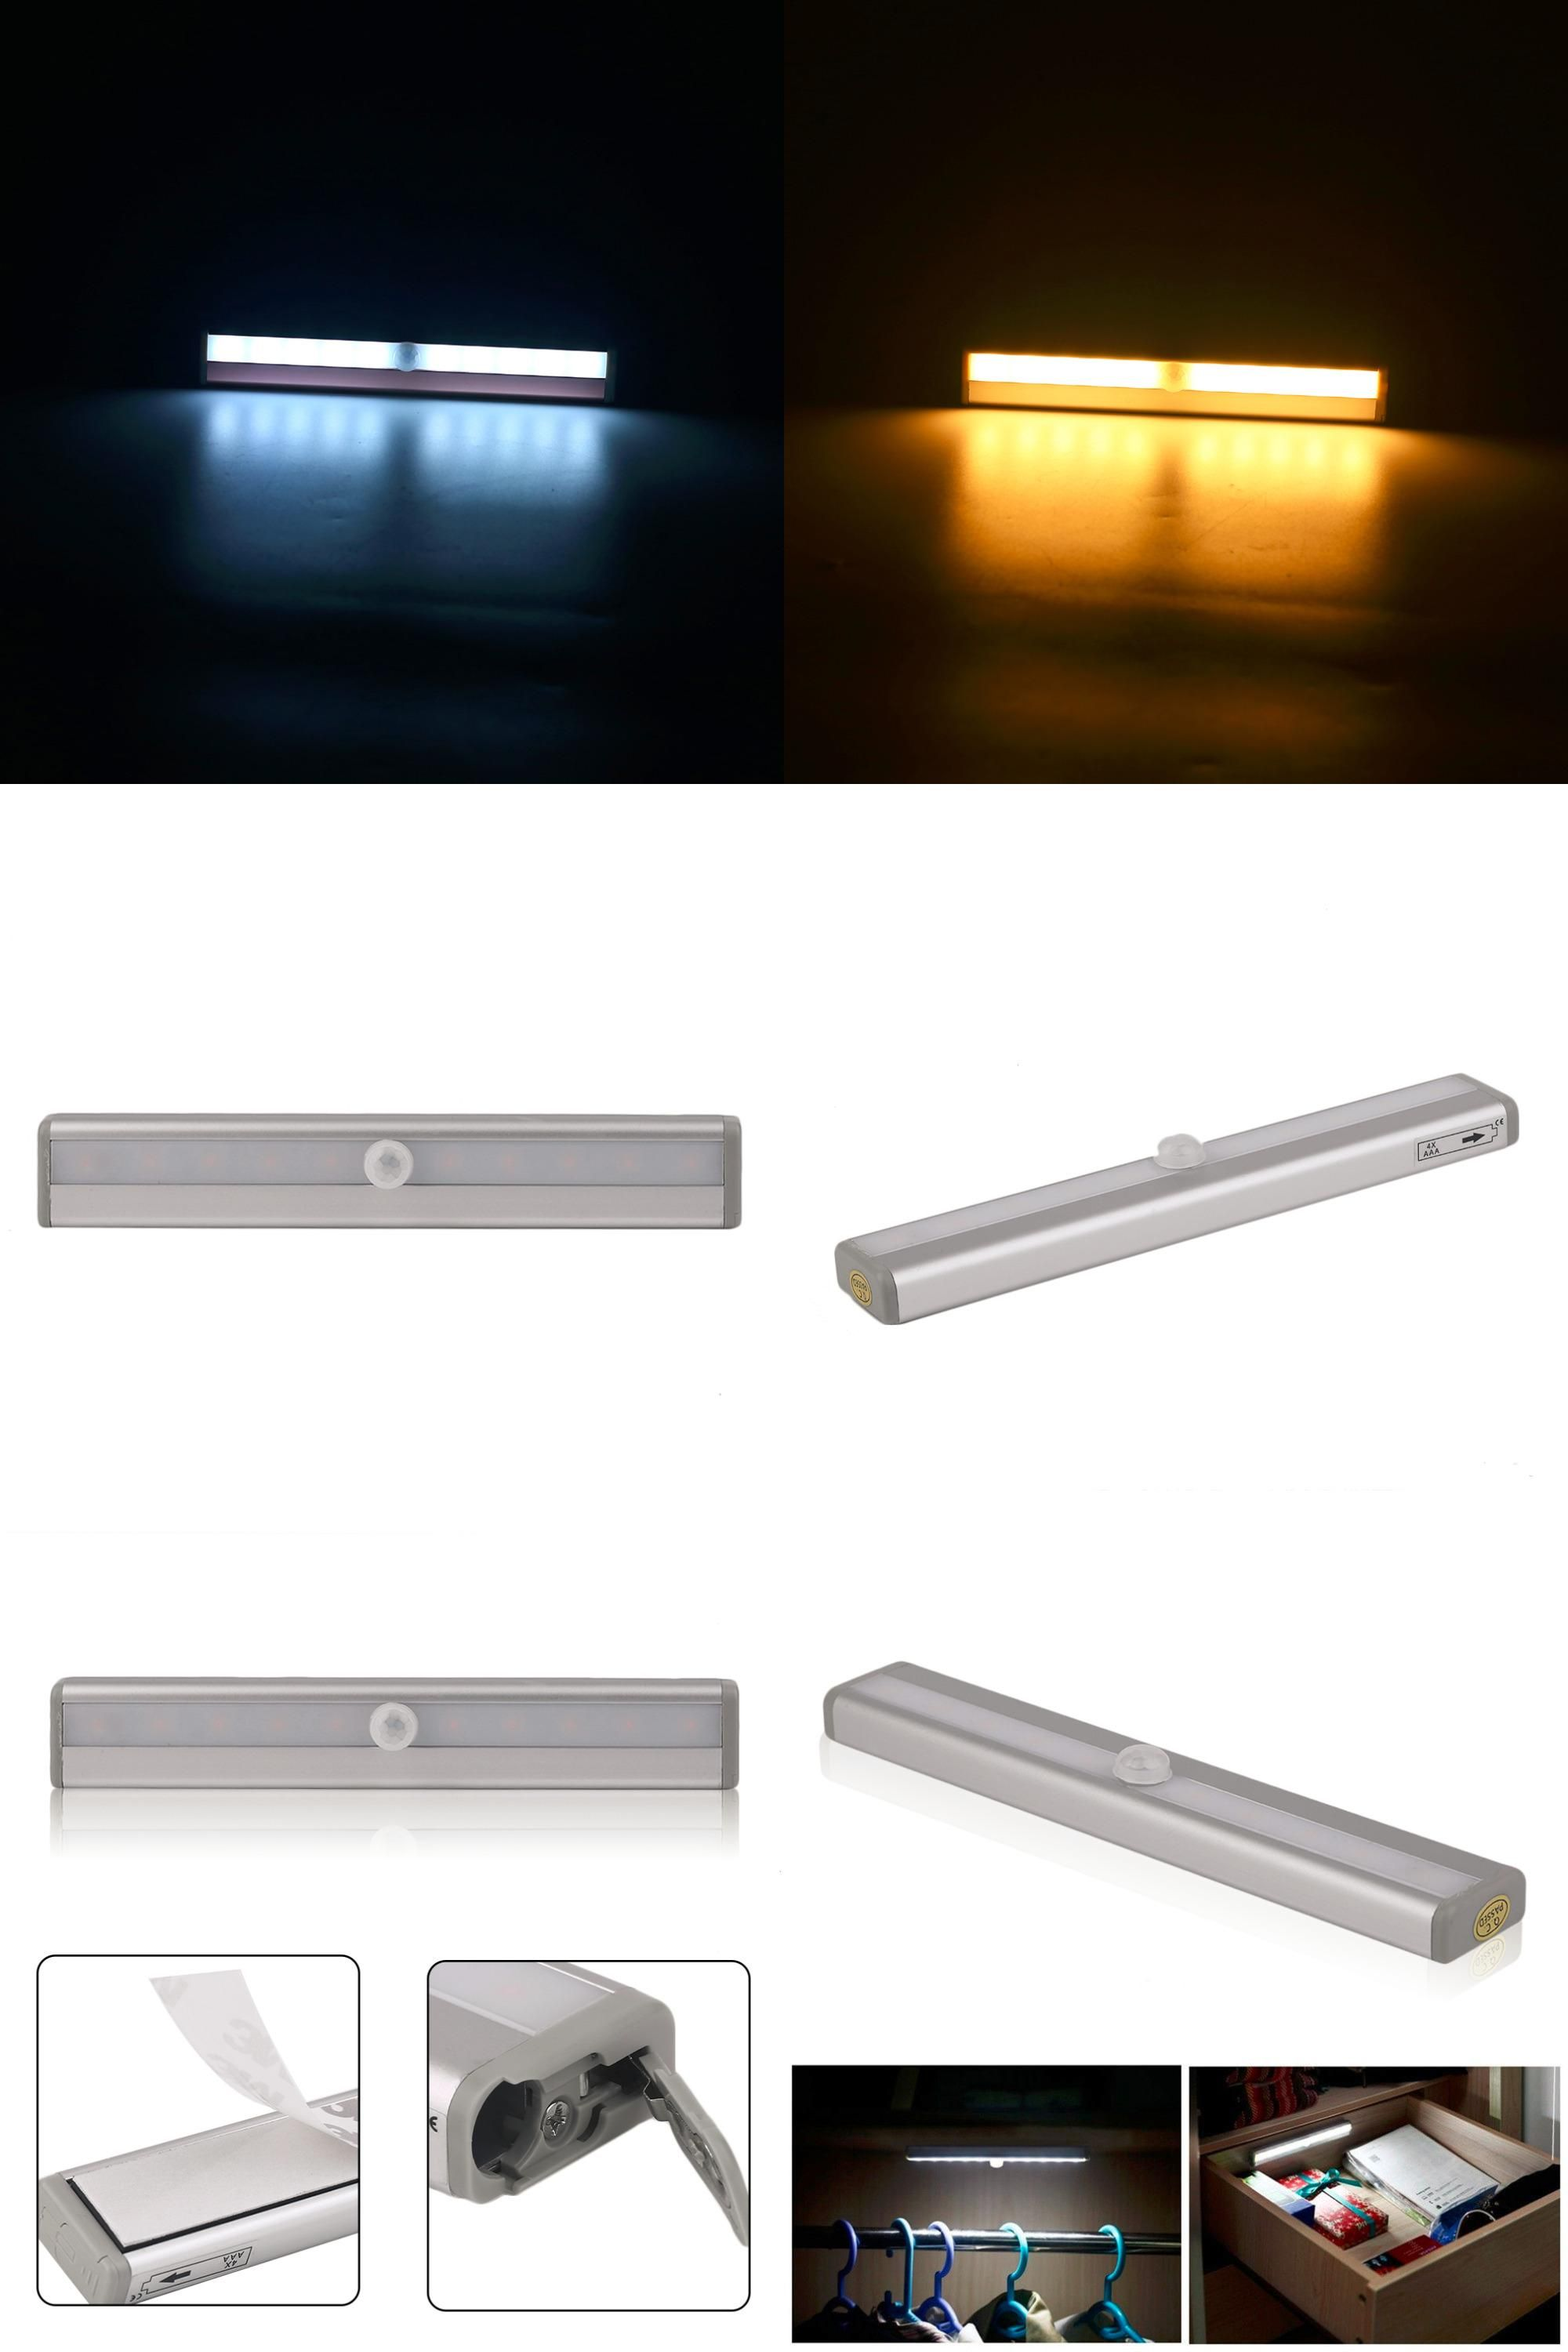 Visit To Buy Intelligent Infrared Led Human Body Induction Lamp Corridor Cabinets Outdoor Security Lights Outdoor Ceiling Lights Outdoor Wall Light Fixtures